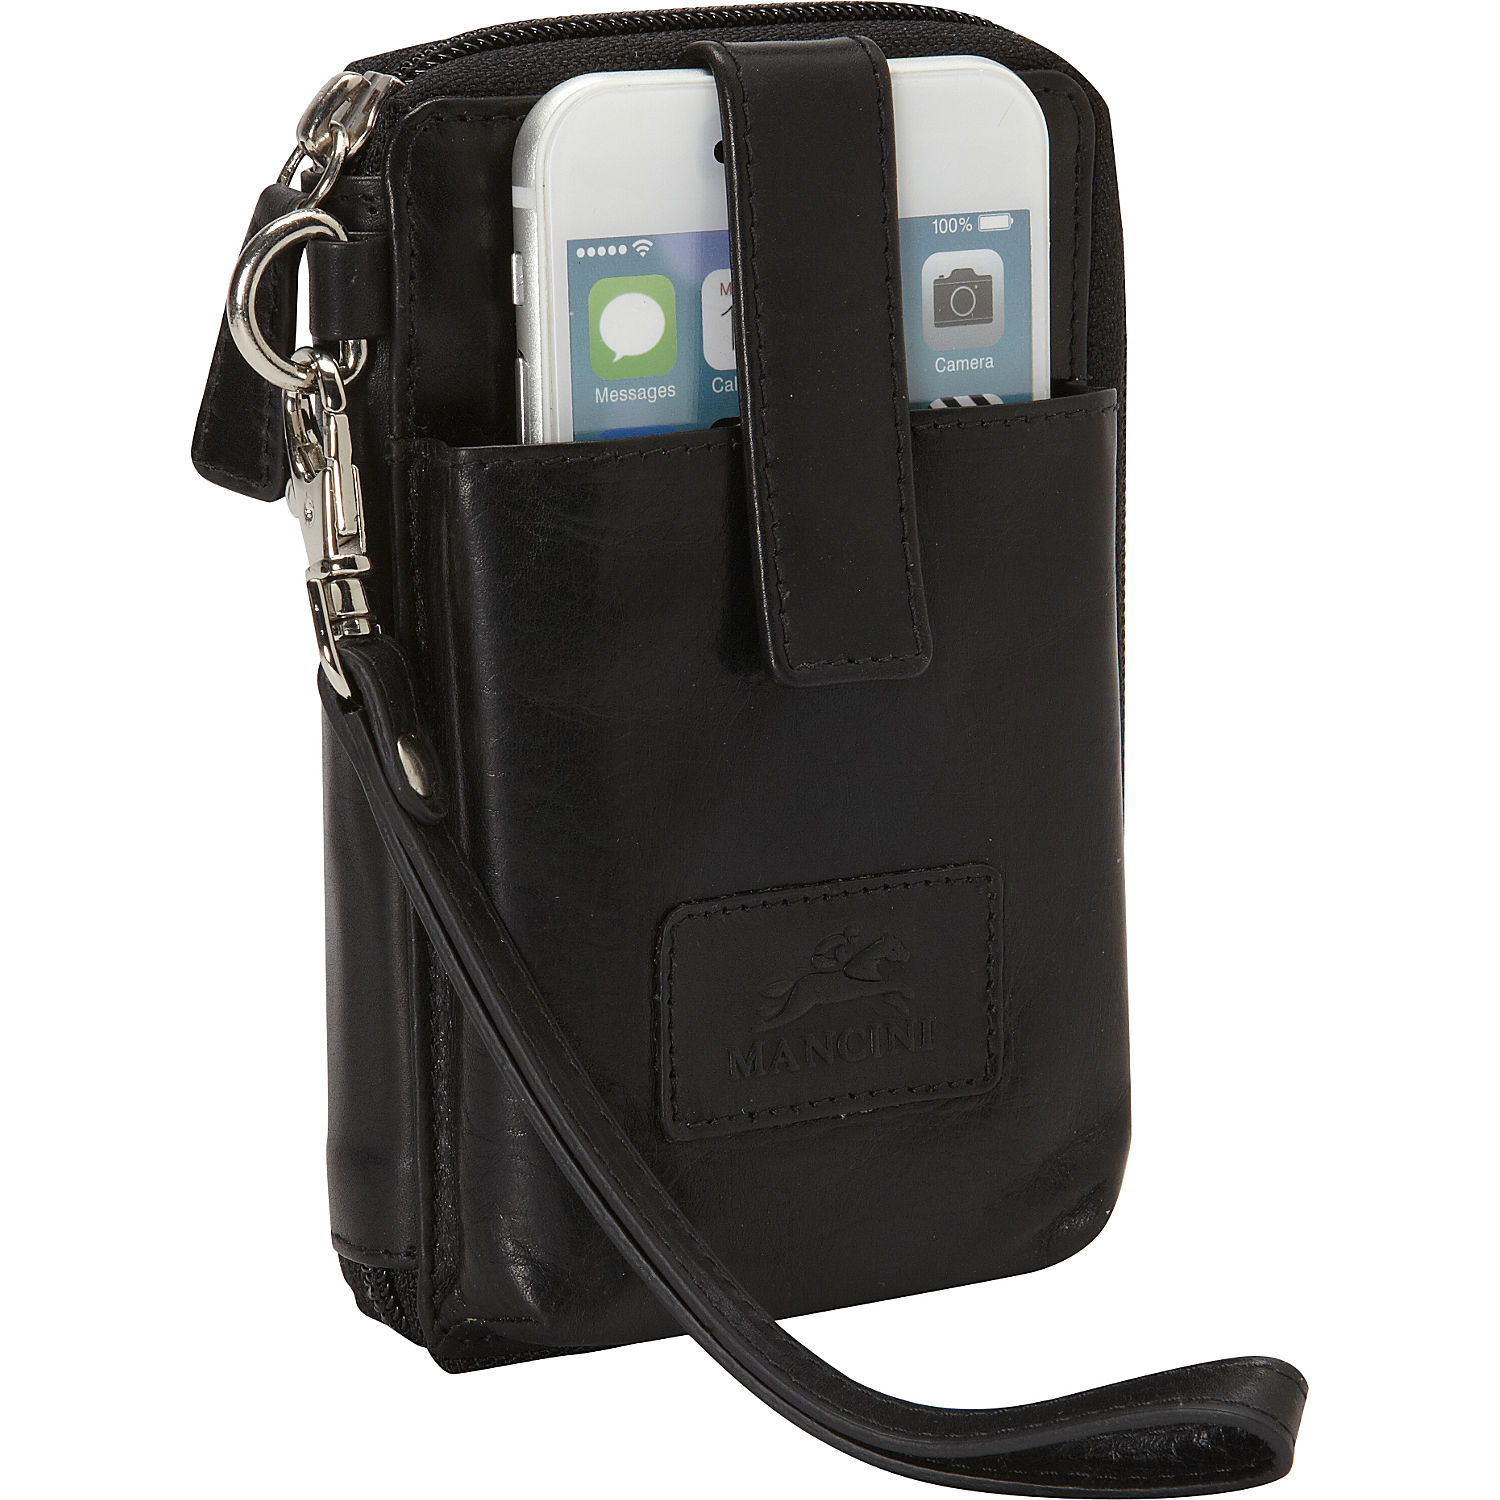 Mancini Leather Goods Cell Phone Rfid Wallet Ebags Com